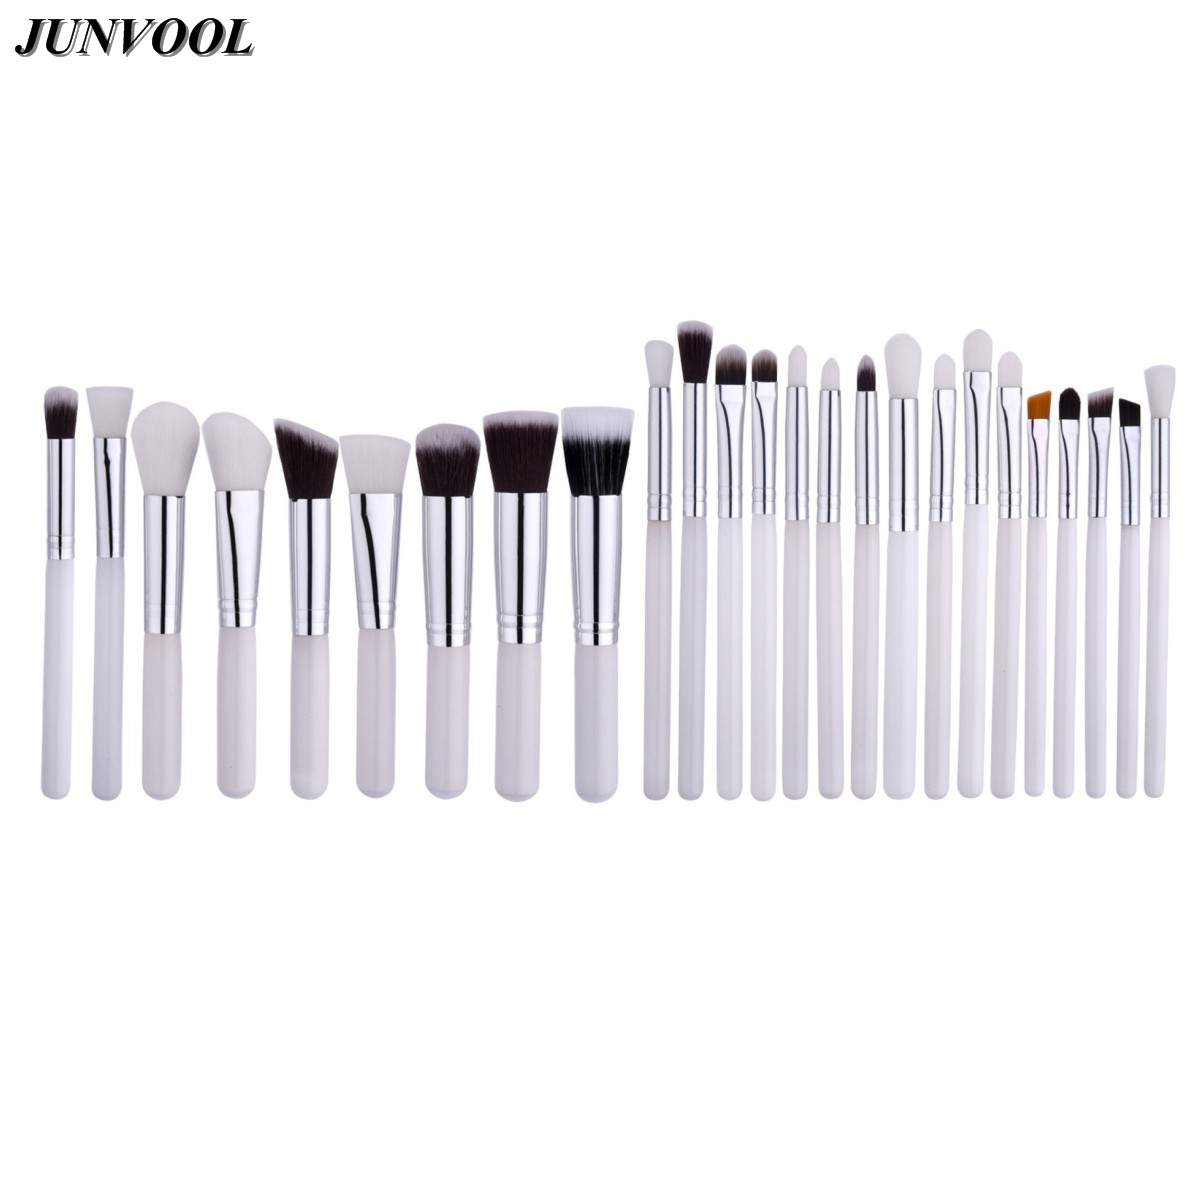 25Pcs Makeup Brushes Set Professional Make Up Tools Kit Powder Foundation Eyeshadow Eyeliner Cosmetic Beauty Blushes White&Black pro 20pcs set make up styling tools cosmetic eyeliner eyebrow lipsticks shadow wood pincel makeup blushes kit cosmetics pinceaux